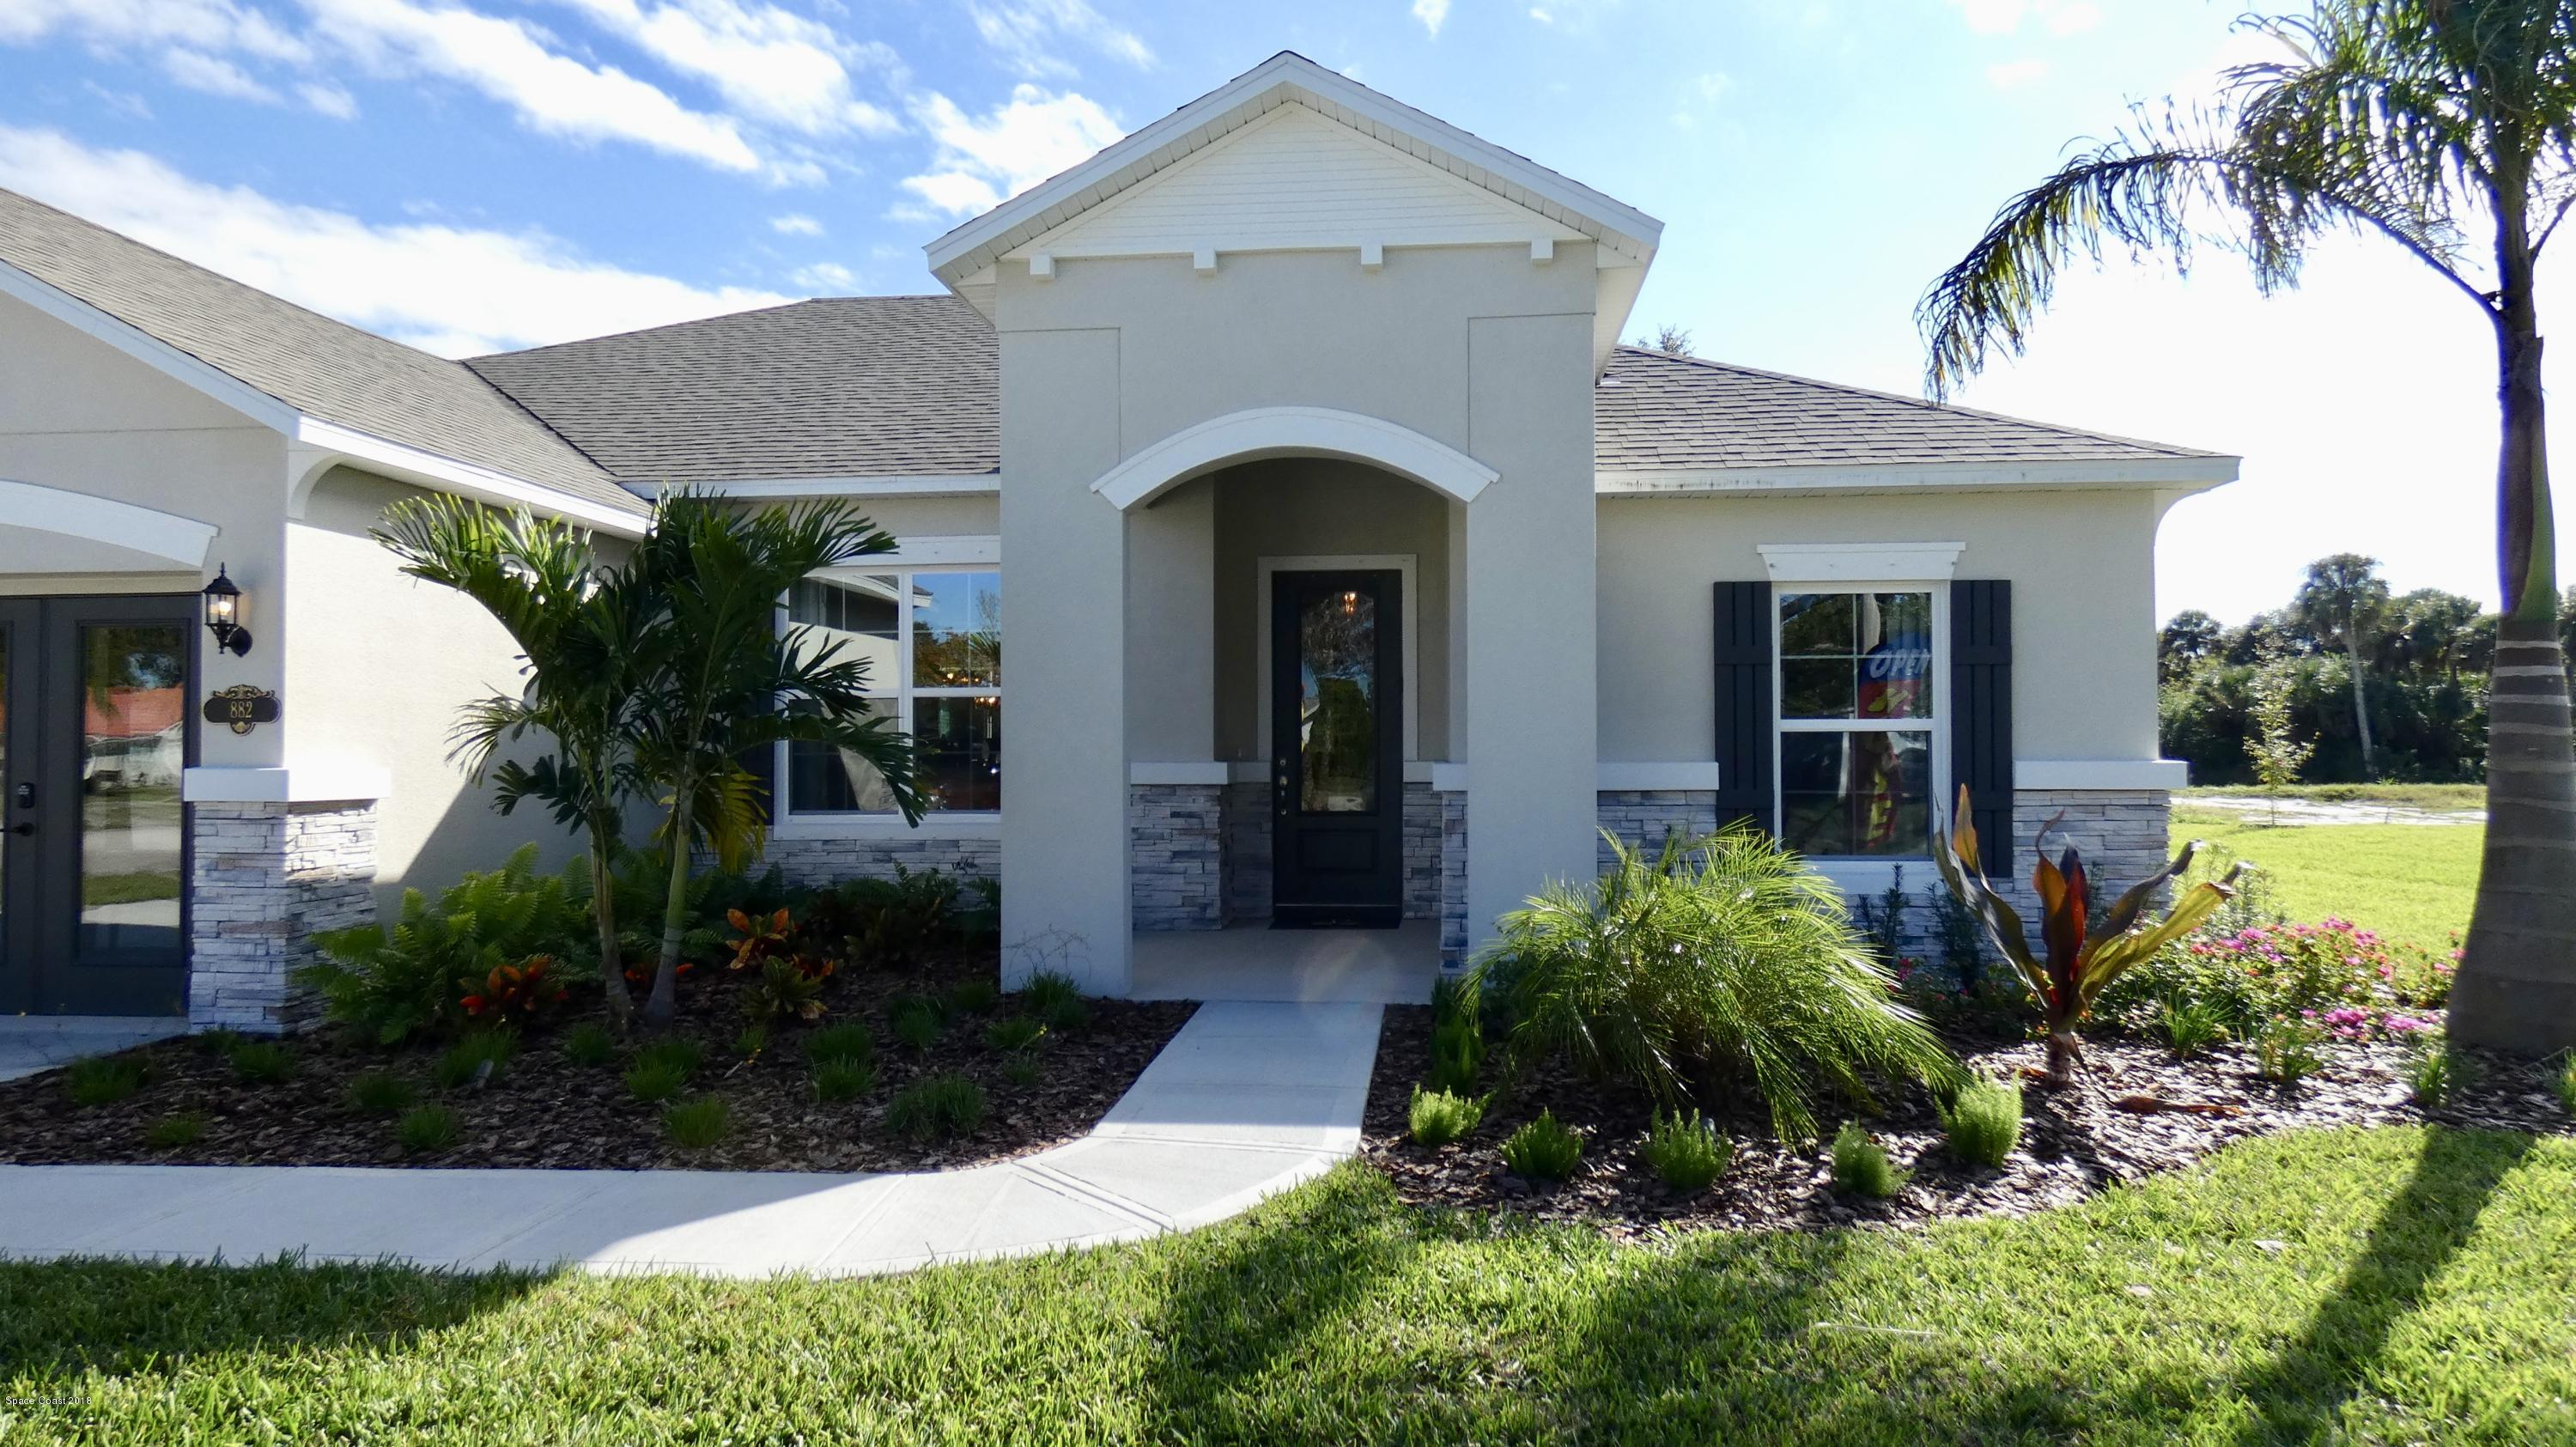 Property for Sale at 220 Spoonbill 220 Spoonbill Melbourne Beach, Florida 32951 United States